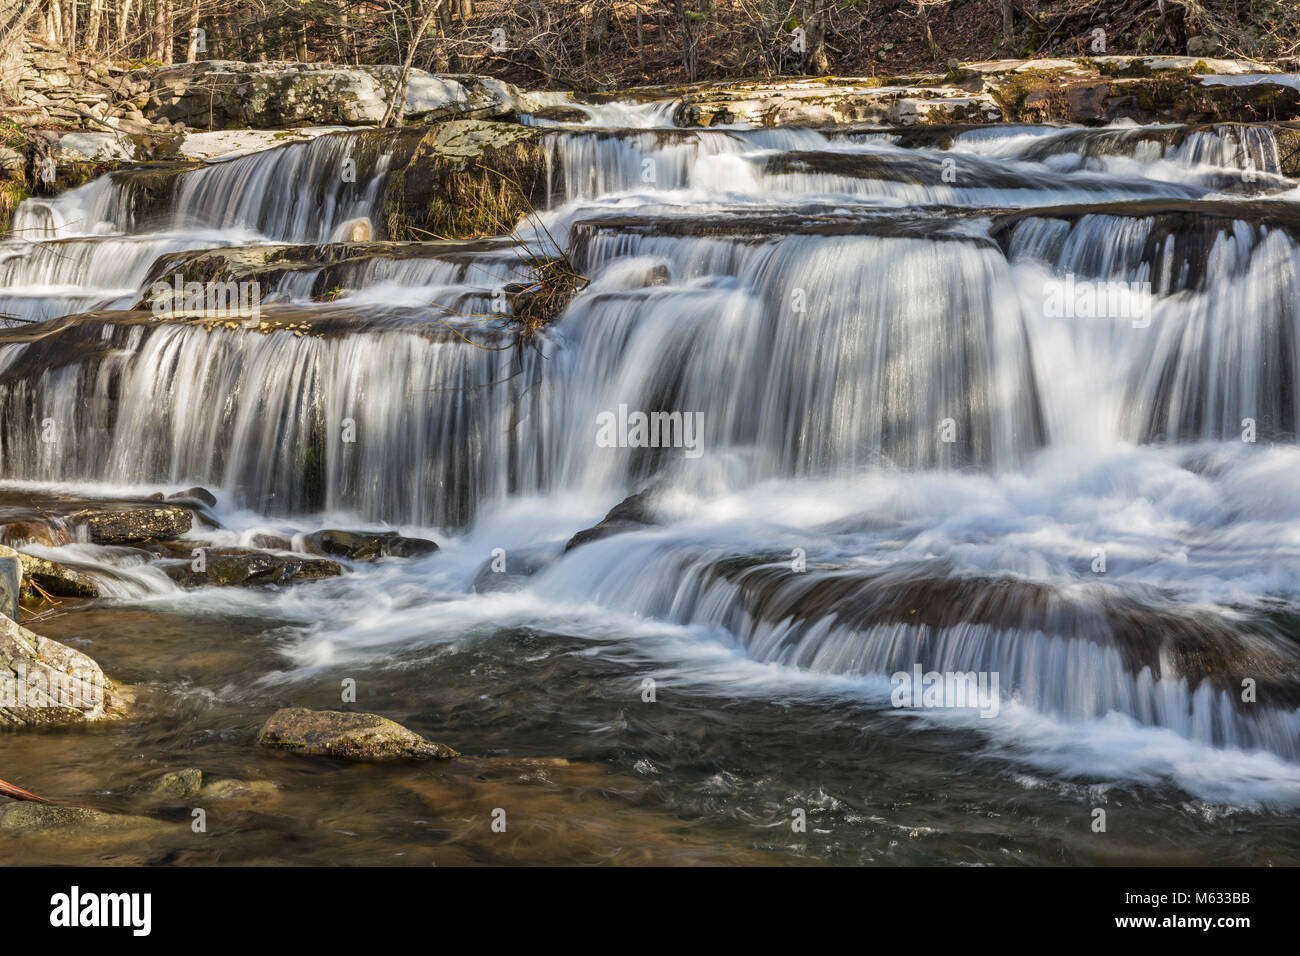 A multi-tiered waterfalls on Stony Clove Creek in Greene Country in the Catskill Mountains in Edgewood, New York - Stock Image